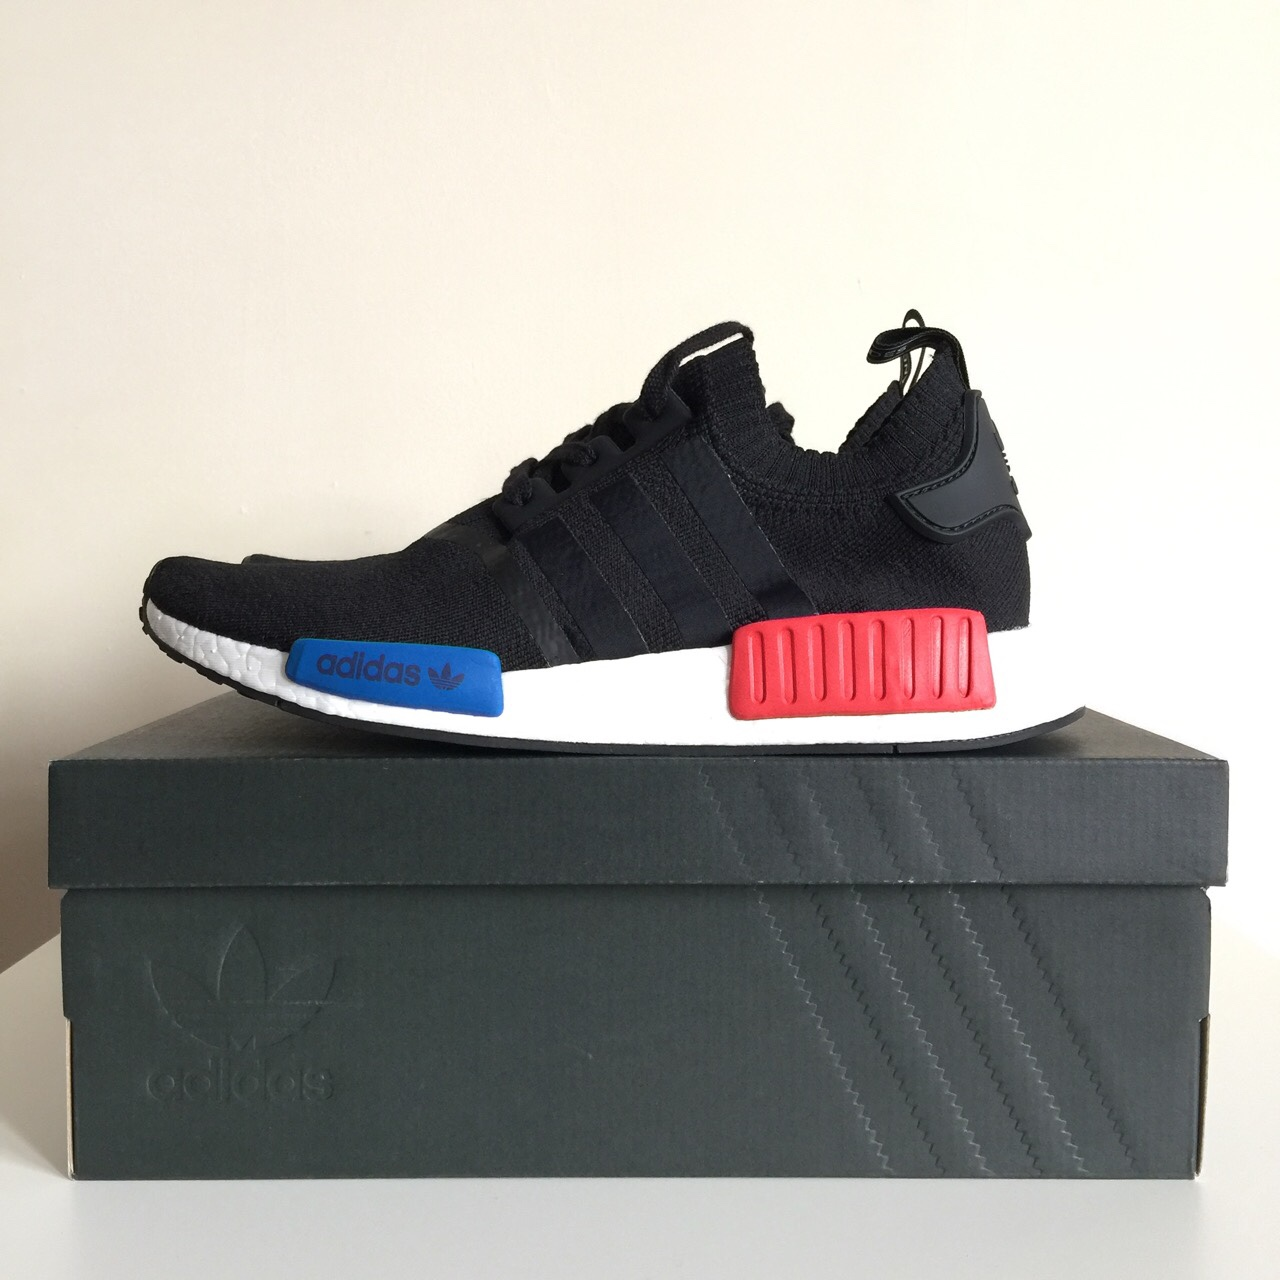 first rate 2fa37 88f55 Adidas NMD R1 PK 'OG' Boost 2017 - UK 9 US 9.5 - As ...